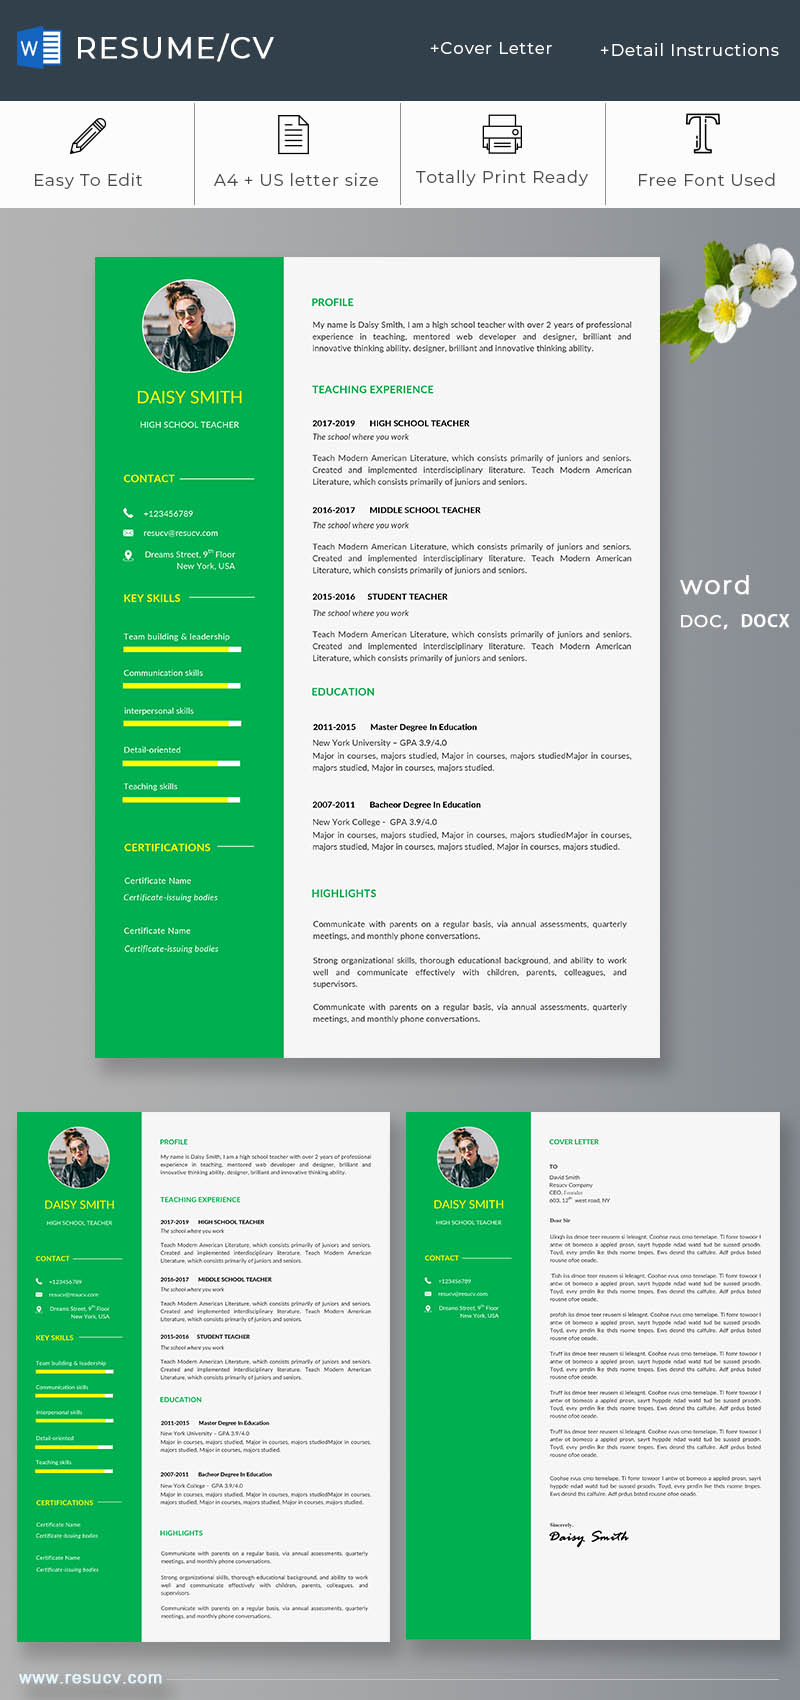 Green school teacher resume/cv template with cover letter